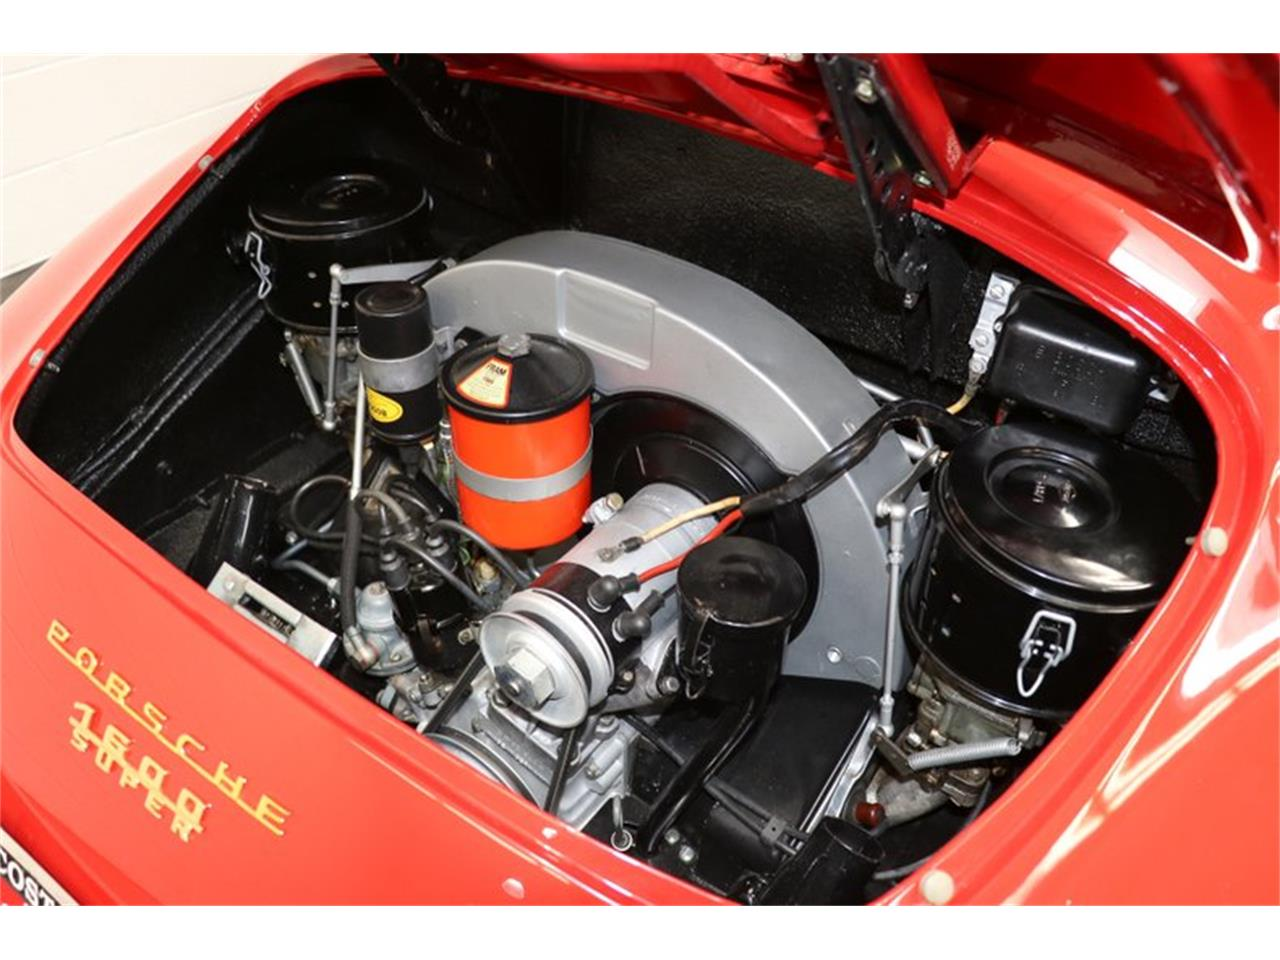 Large Picture of Classic '58 Porsche 356 located in California - $269,950.00 - OY6D